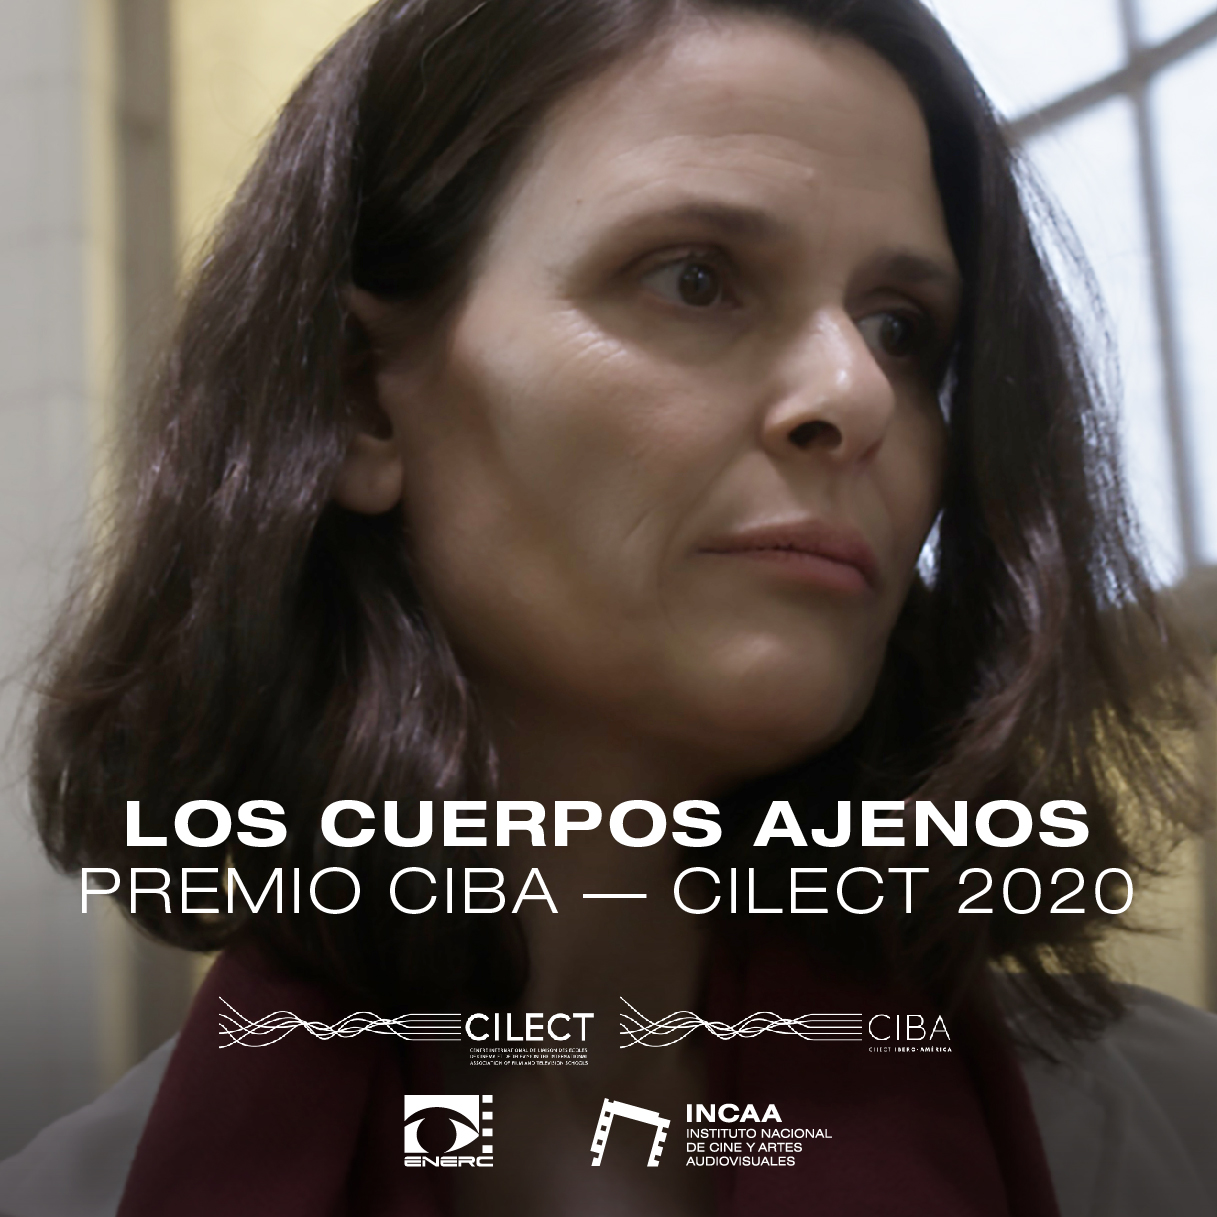 Premio CILECT Ibero American Association (CIBA)